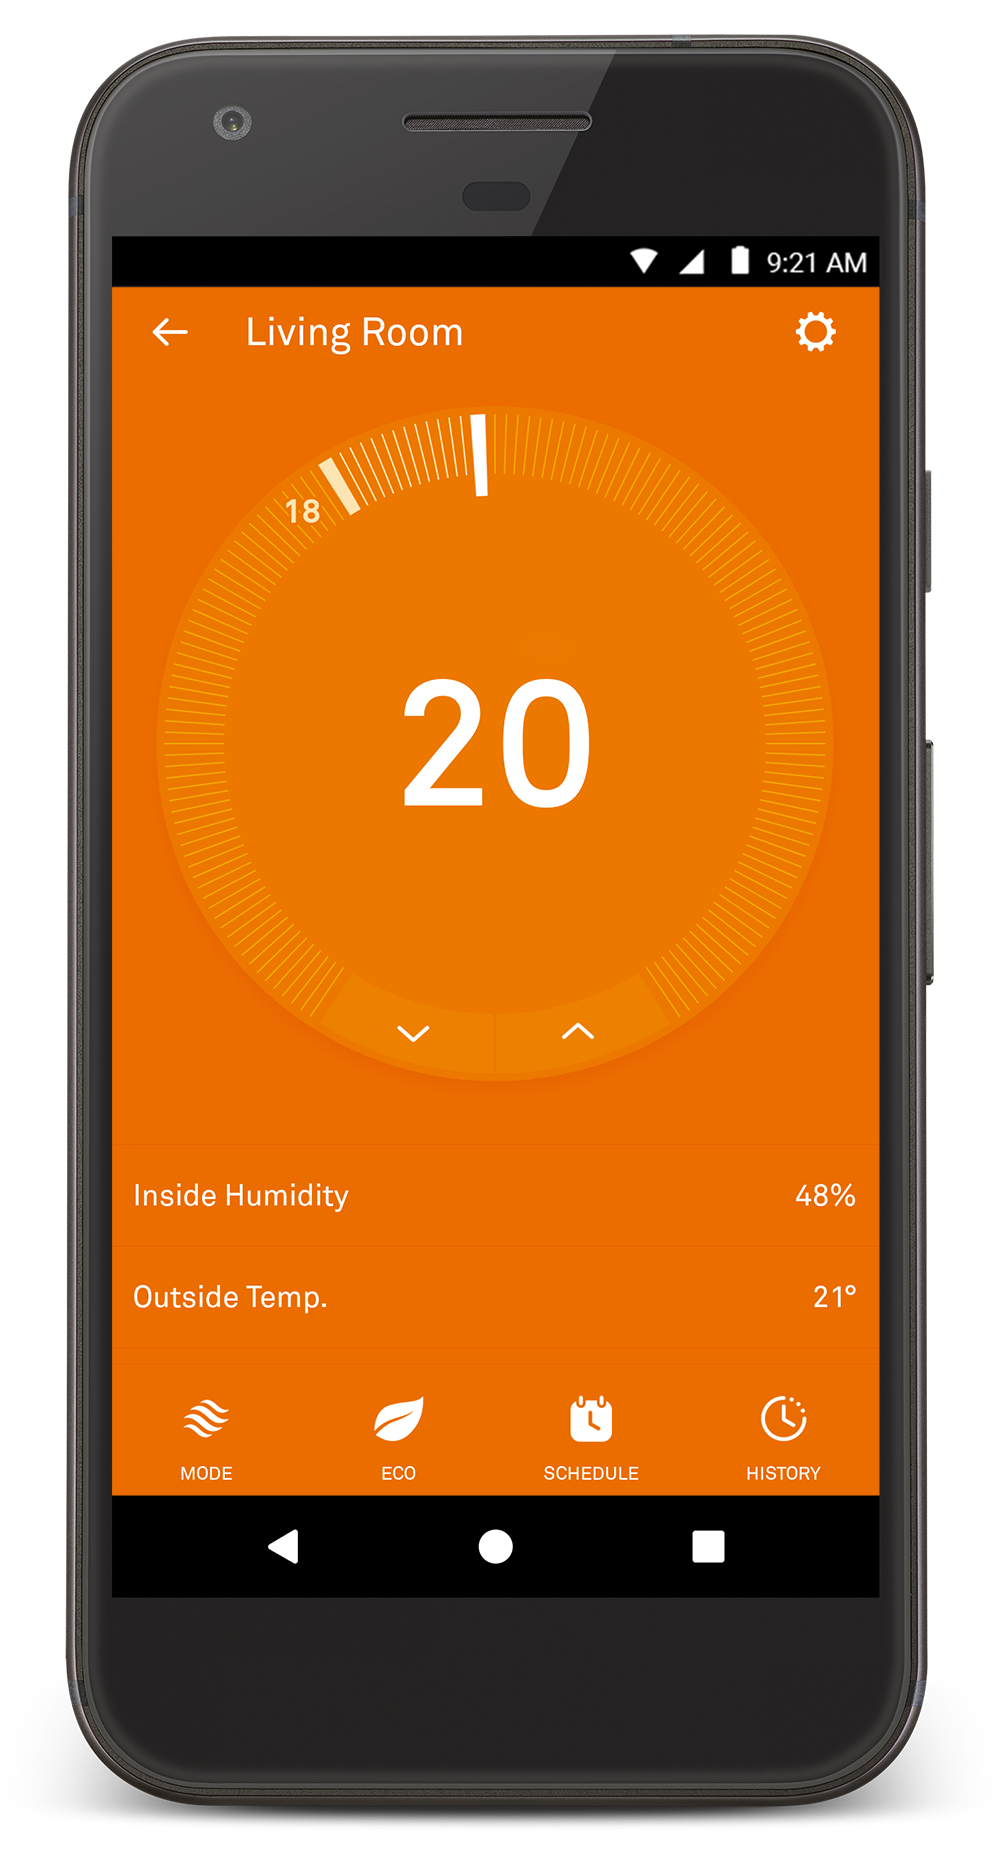 https://nest.com/support/images/misc-nest-thermostat-eu/app-nest-learning-thermostat-heating-en-gb.png